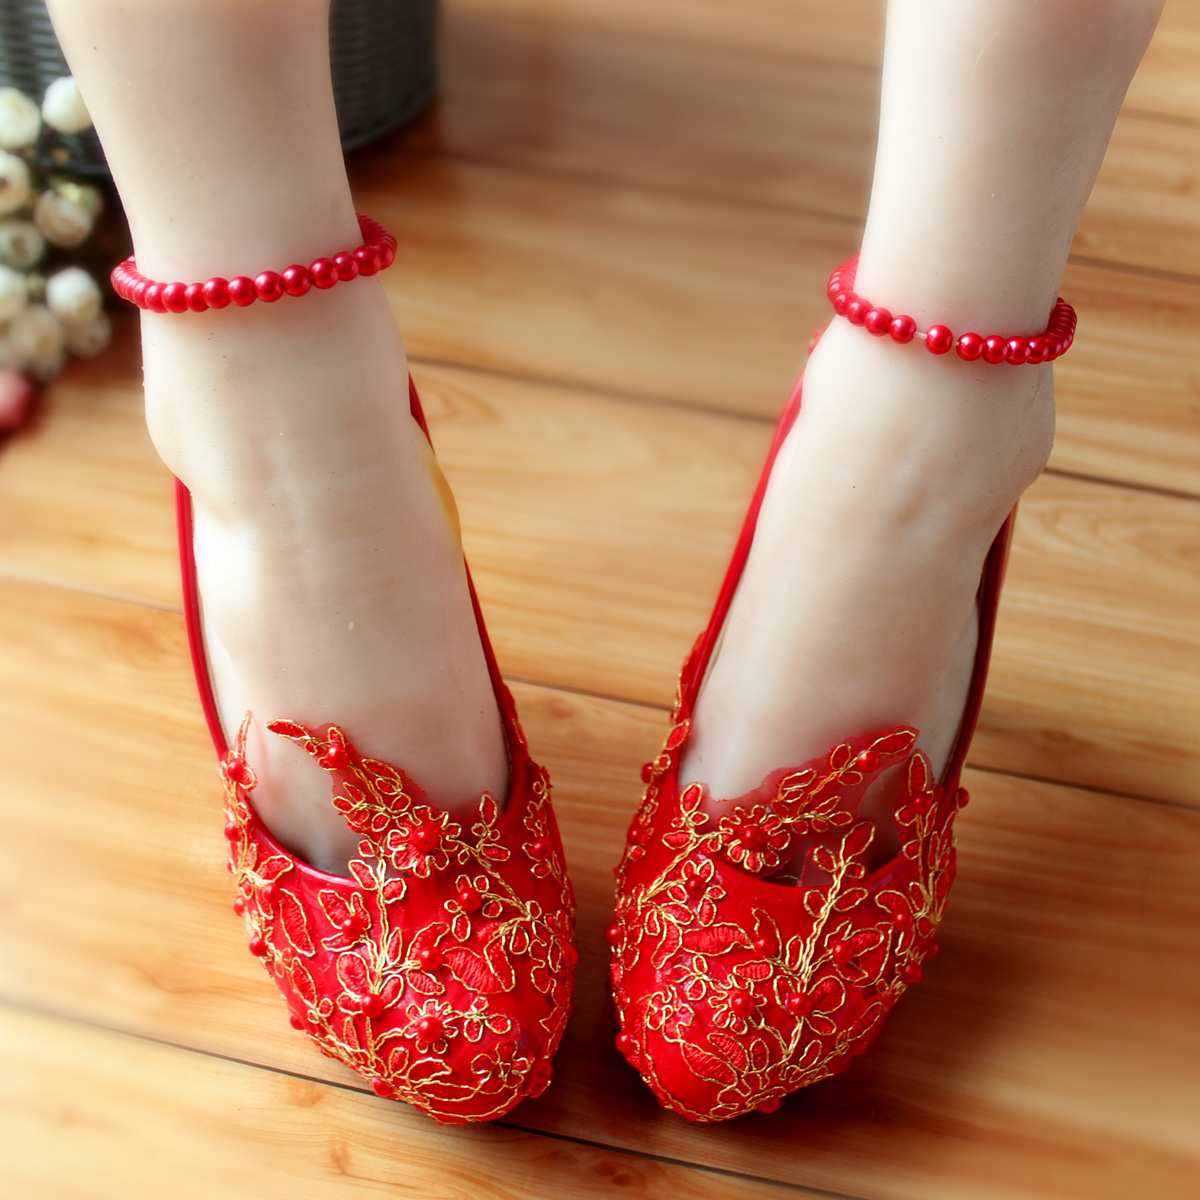 3 Inch Red High Heels